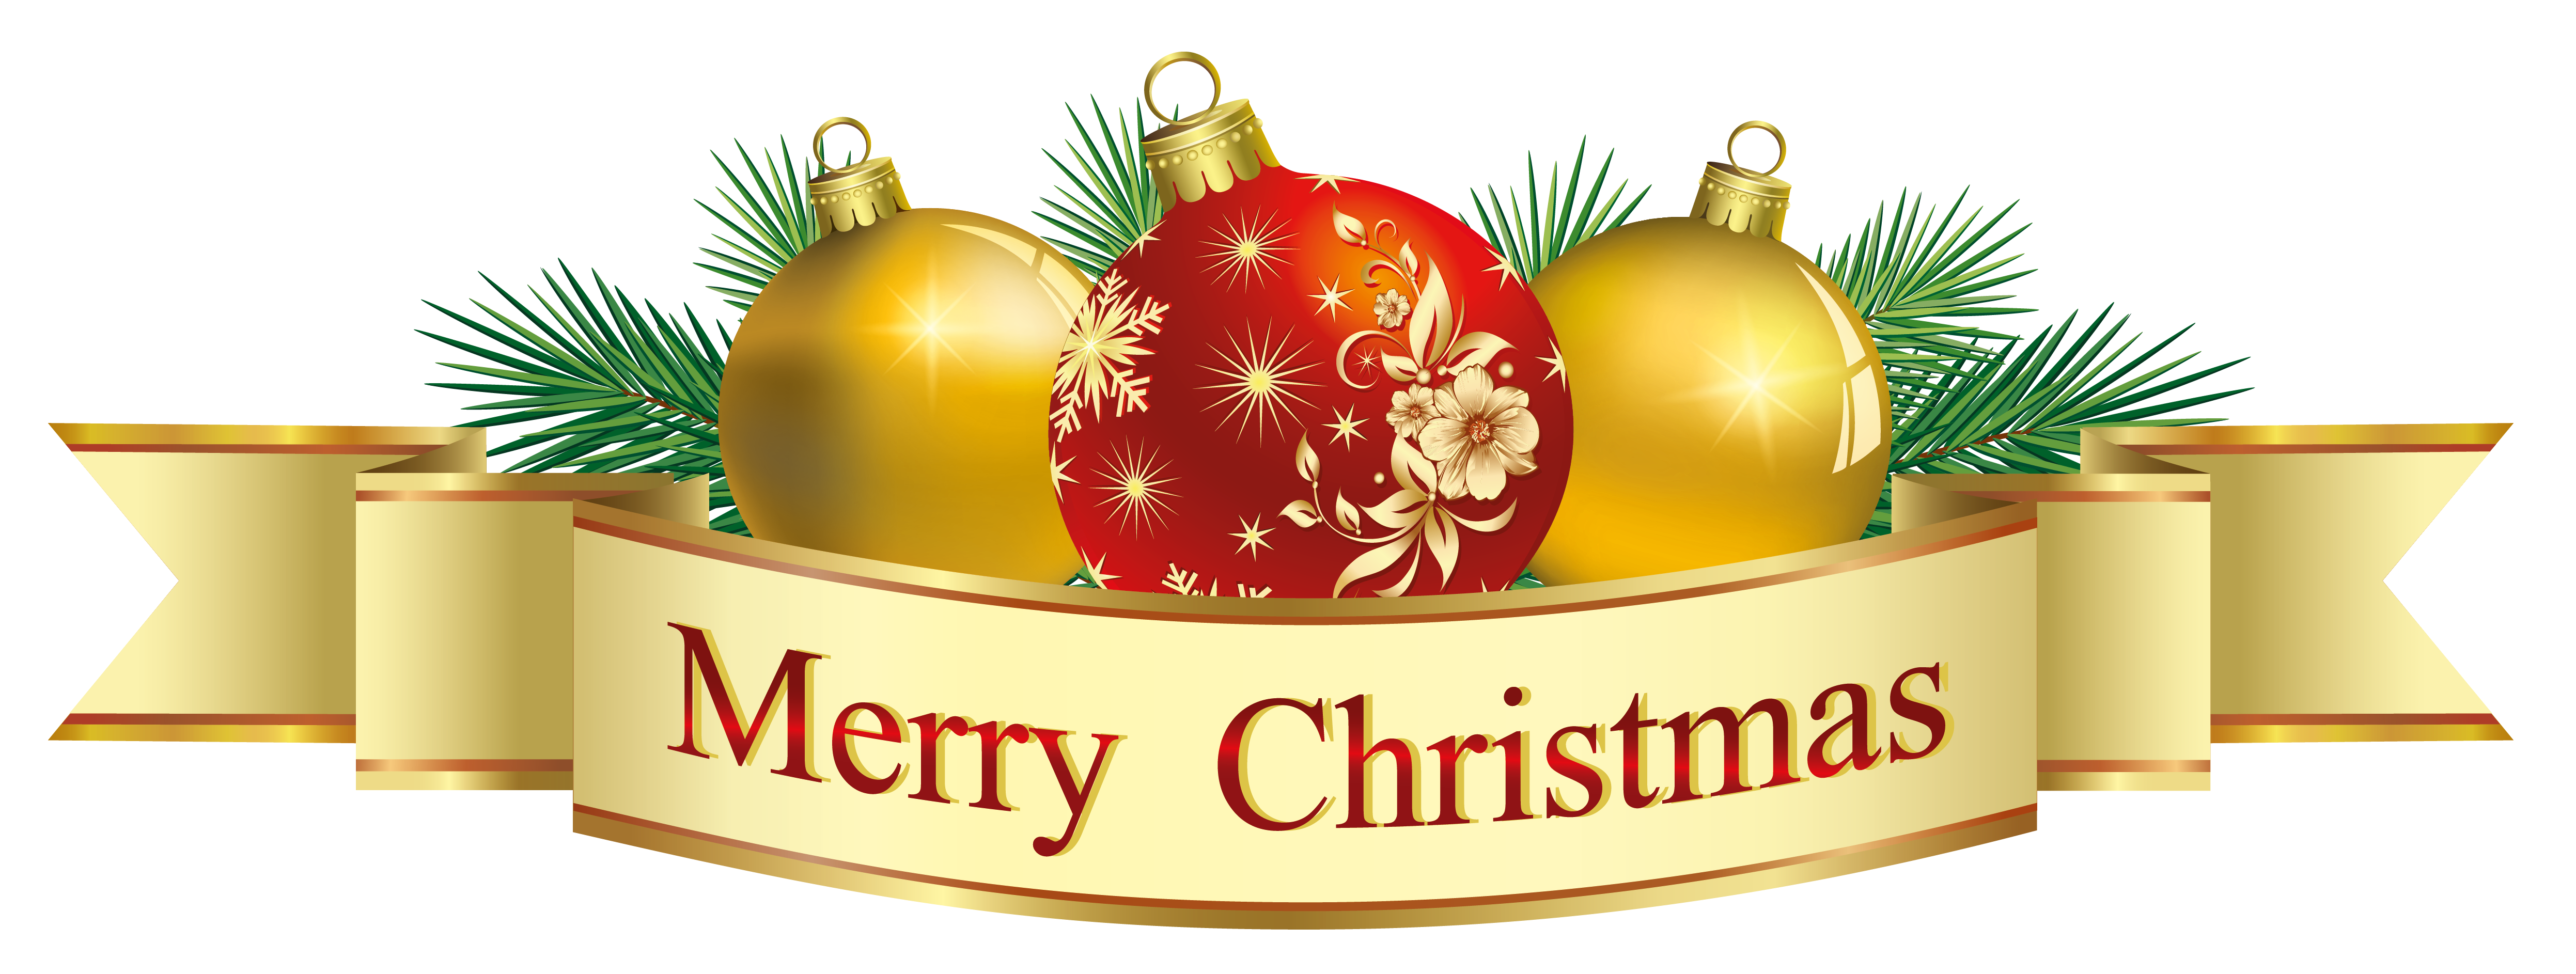 Decoration Clipart Merry Christmas Decoration Merry Christmas Transparent Free For Download On Webstockreview 2020